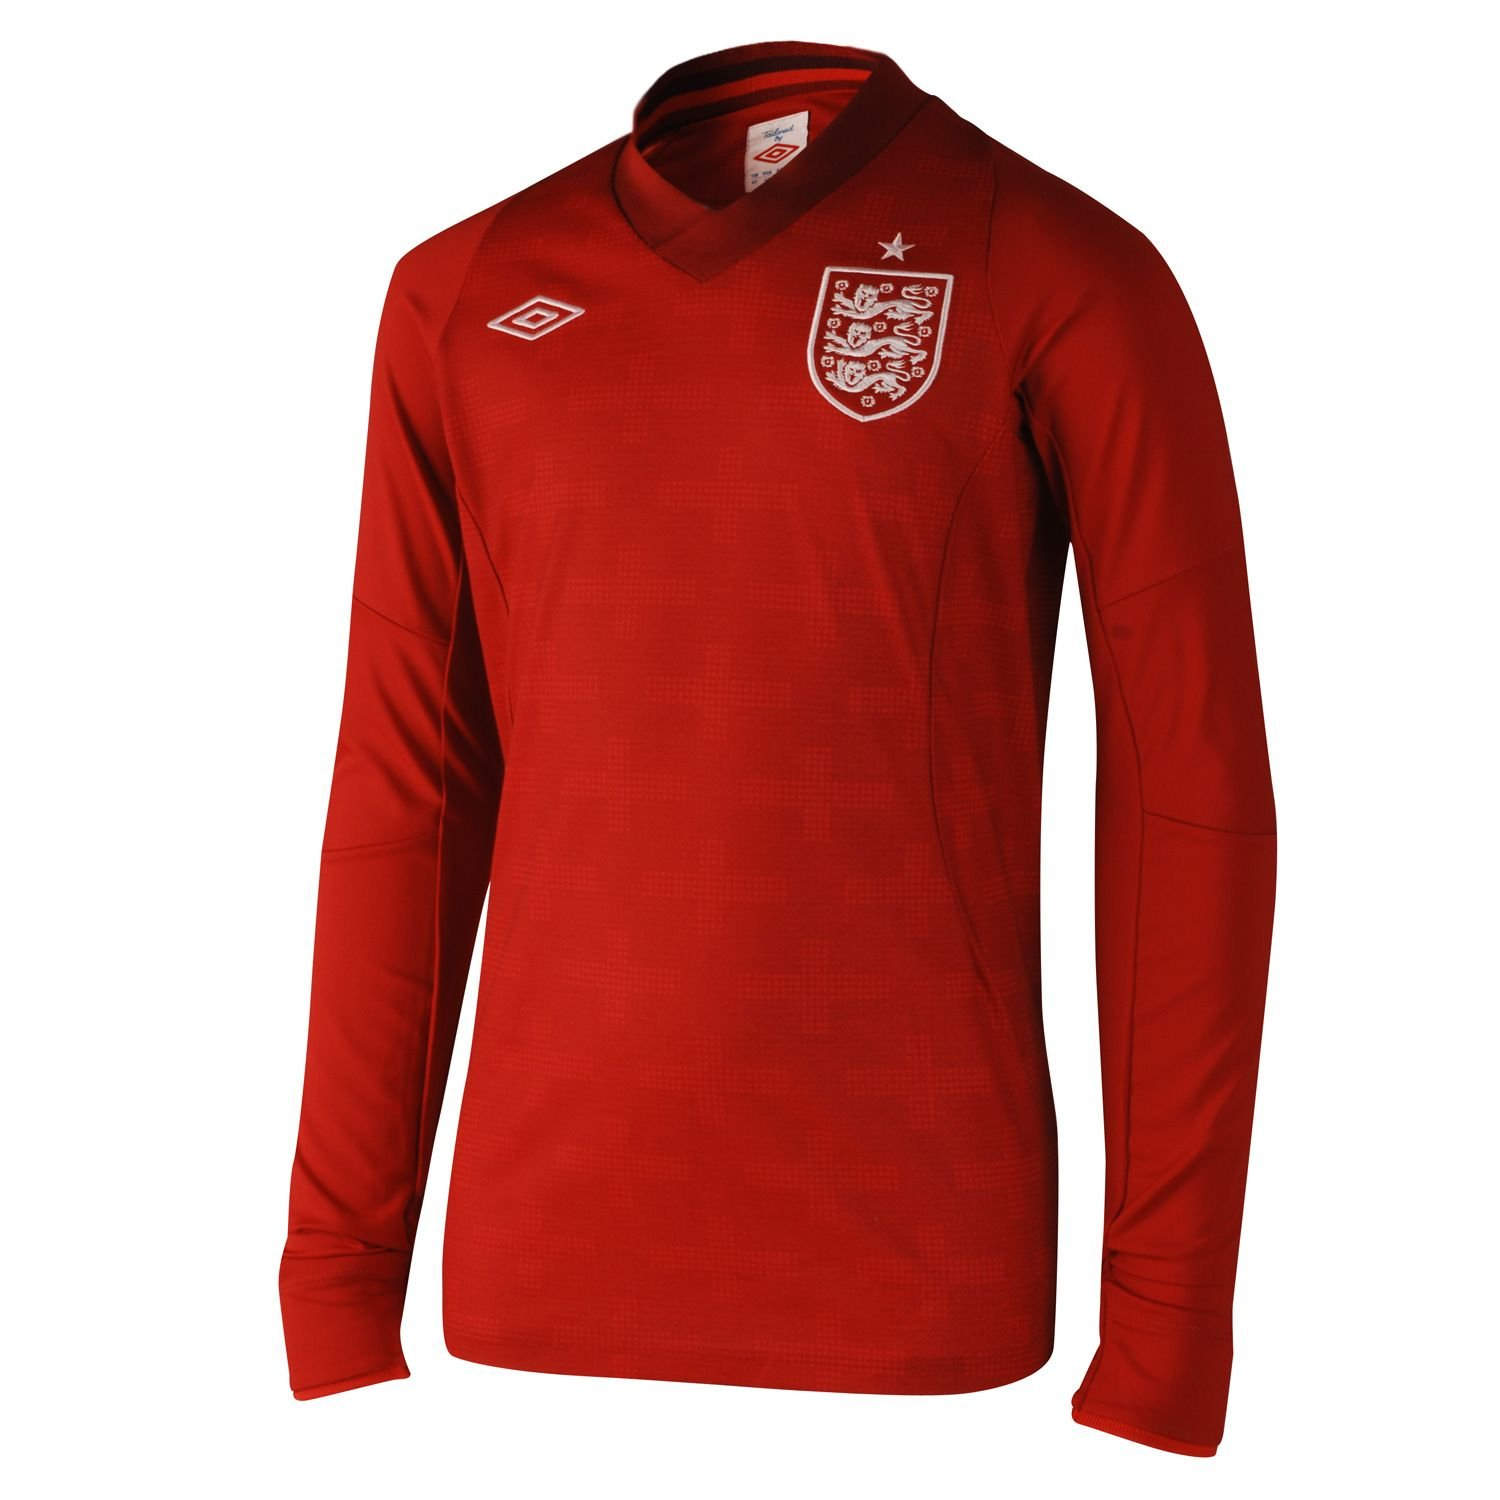 Umbro 2012-13 England Euro 2012 Long Sleeve GK Football Soccer T-Shirt Trikot (Kids)